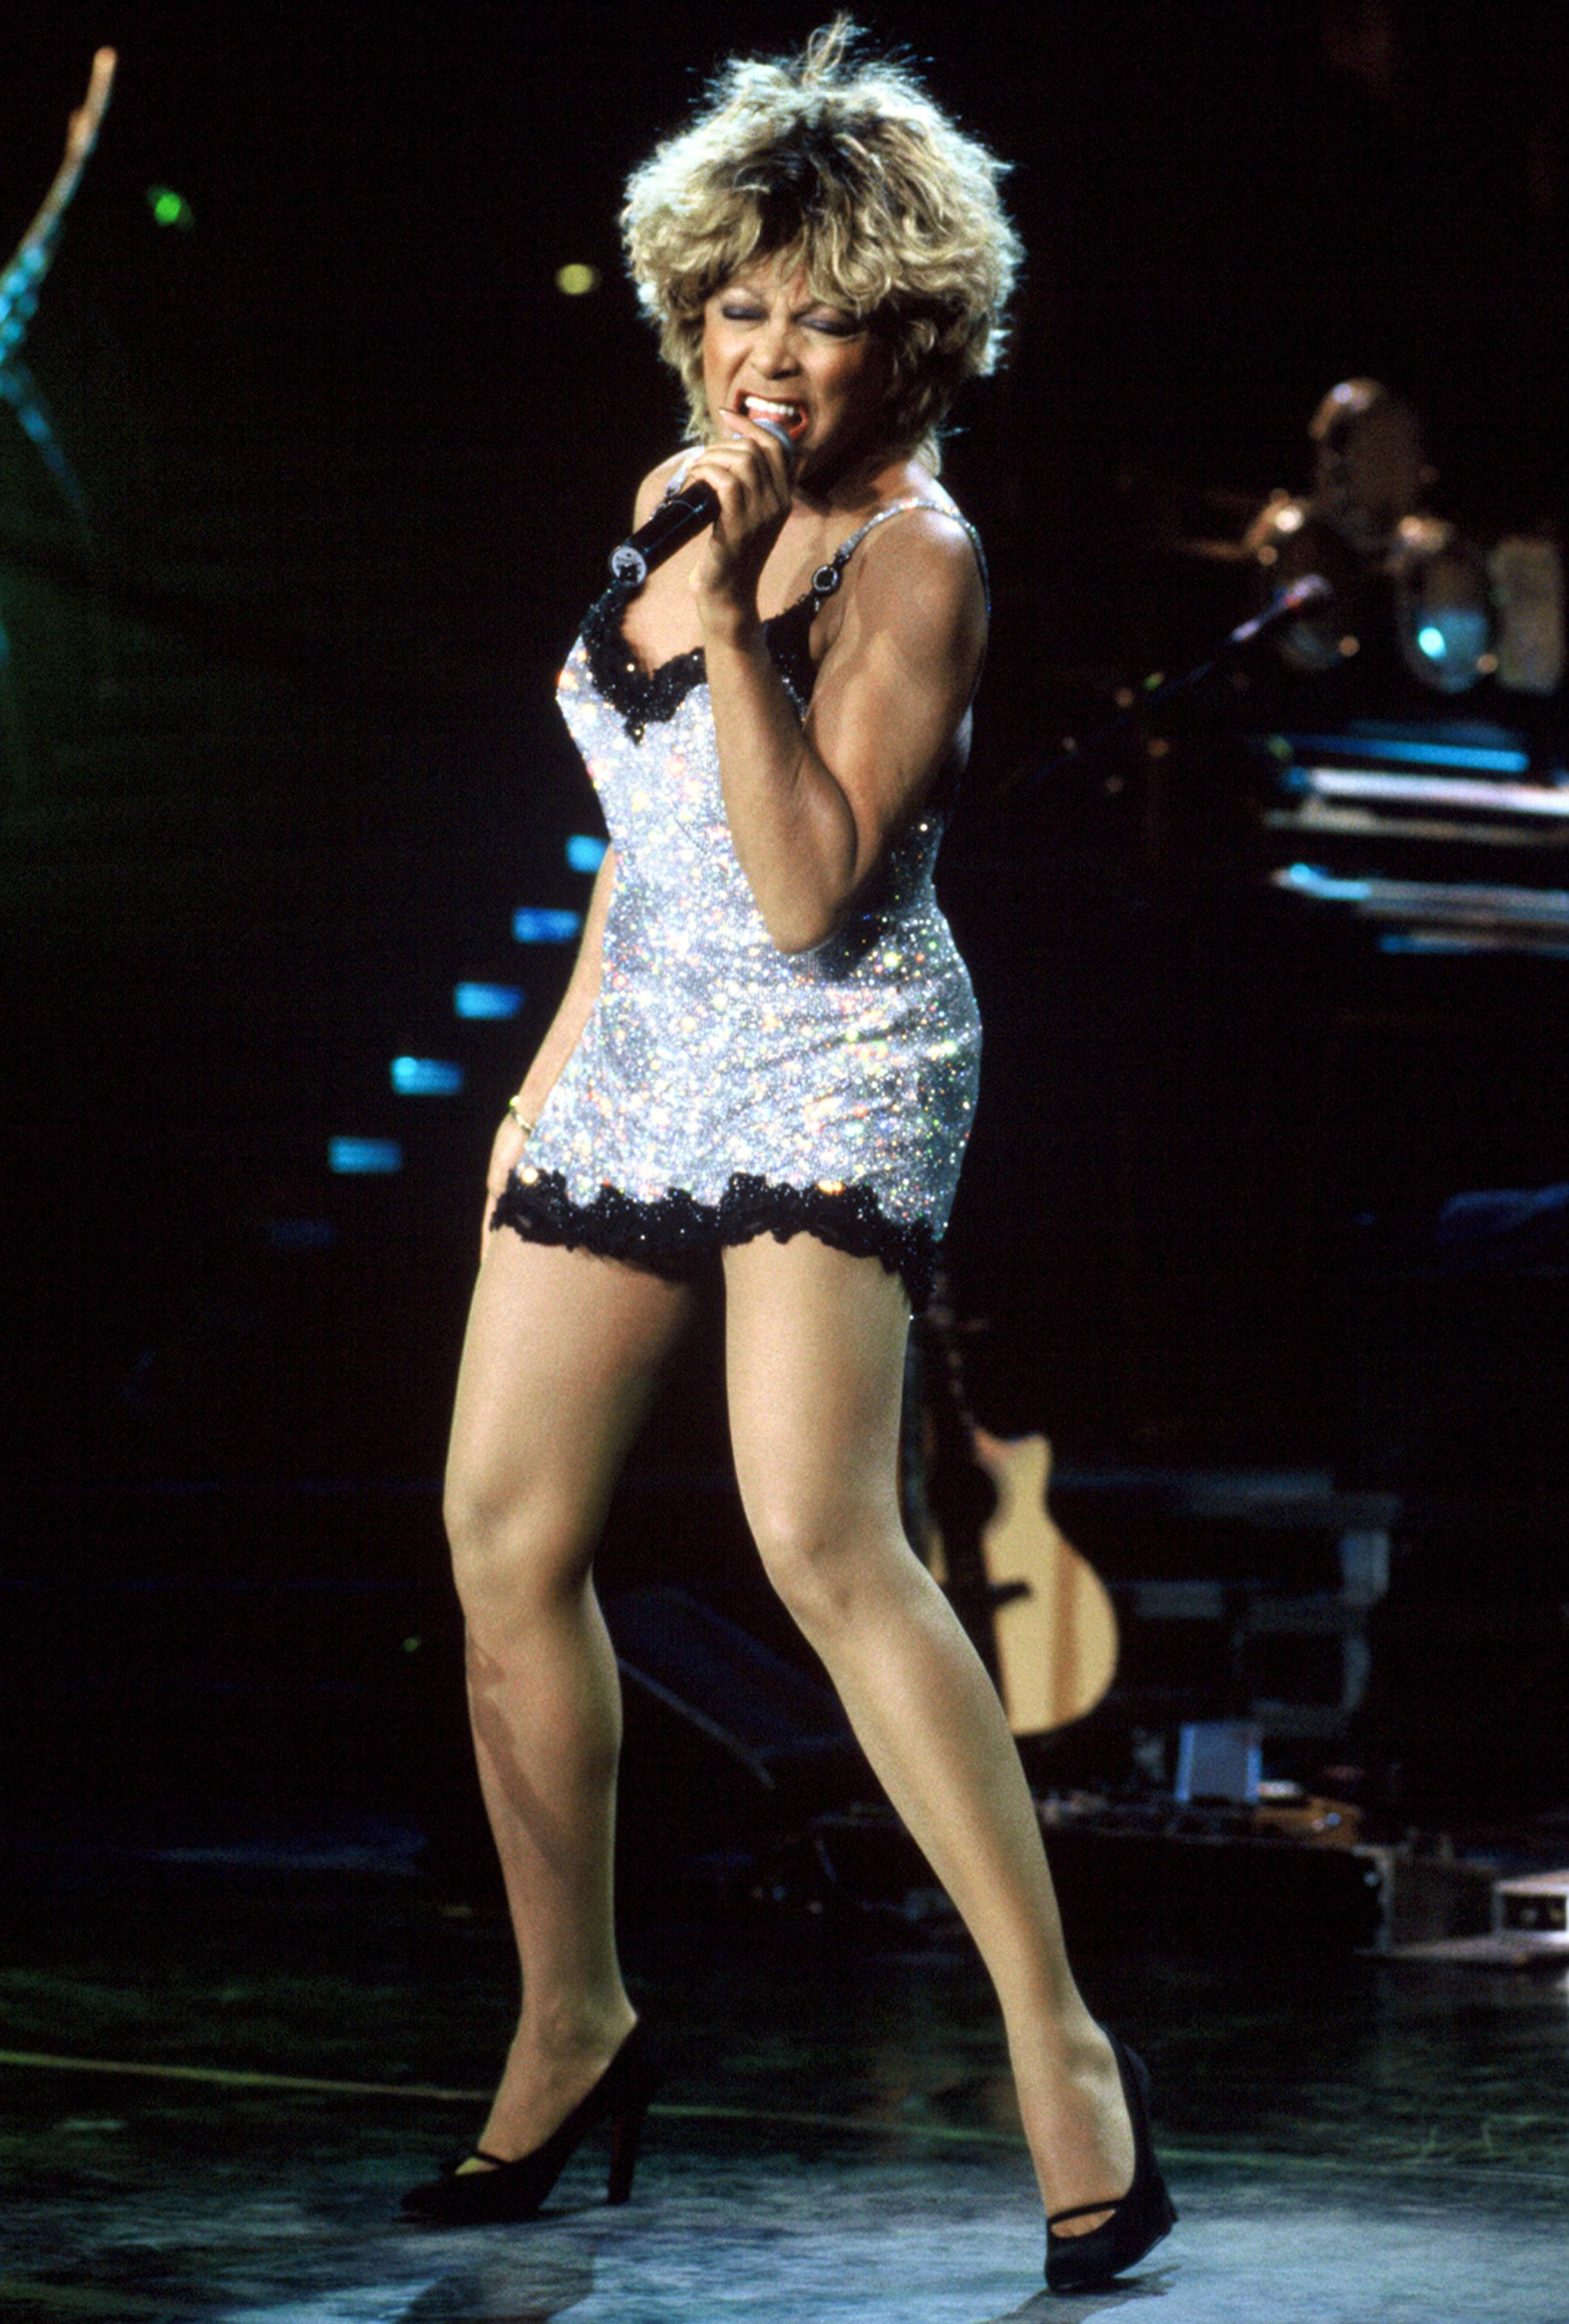 MOUNTAIN VIEW, CA - MAY 23: Tina Turner performs at Shoreline Amphitheatre on May 23, 1997 in Mountain View California. (Photo by Tim Mosenfelder/Getty Images)